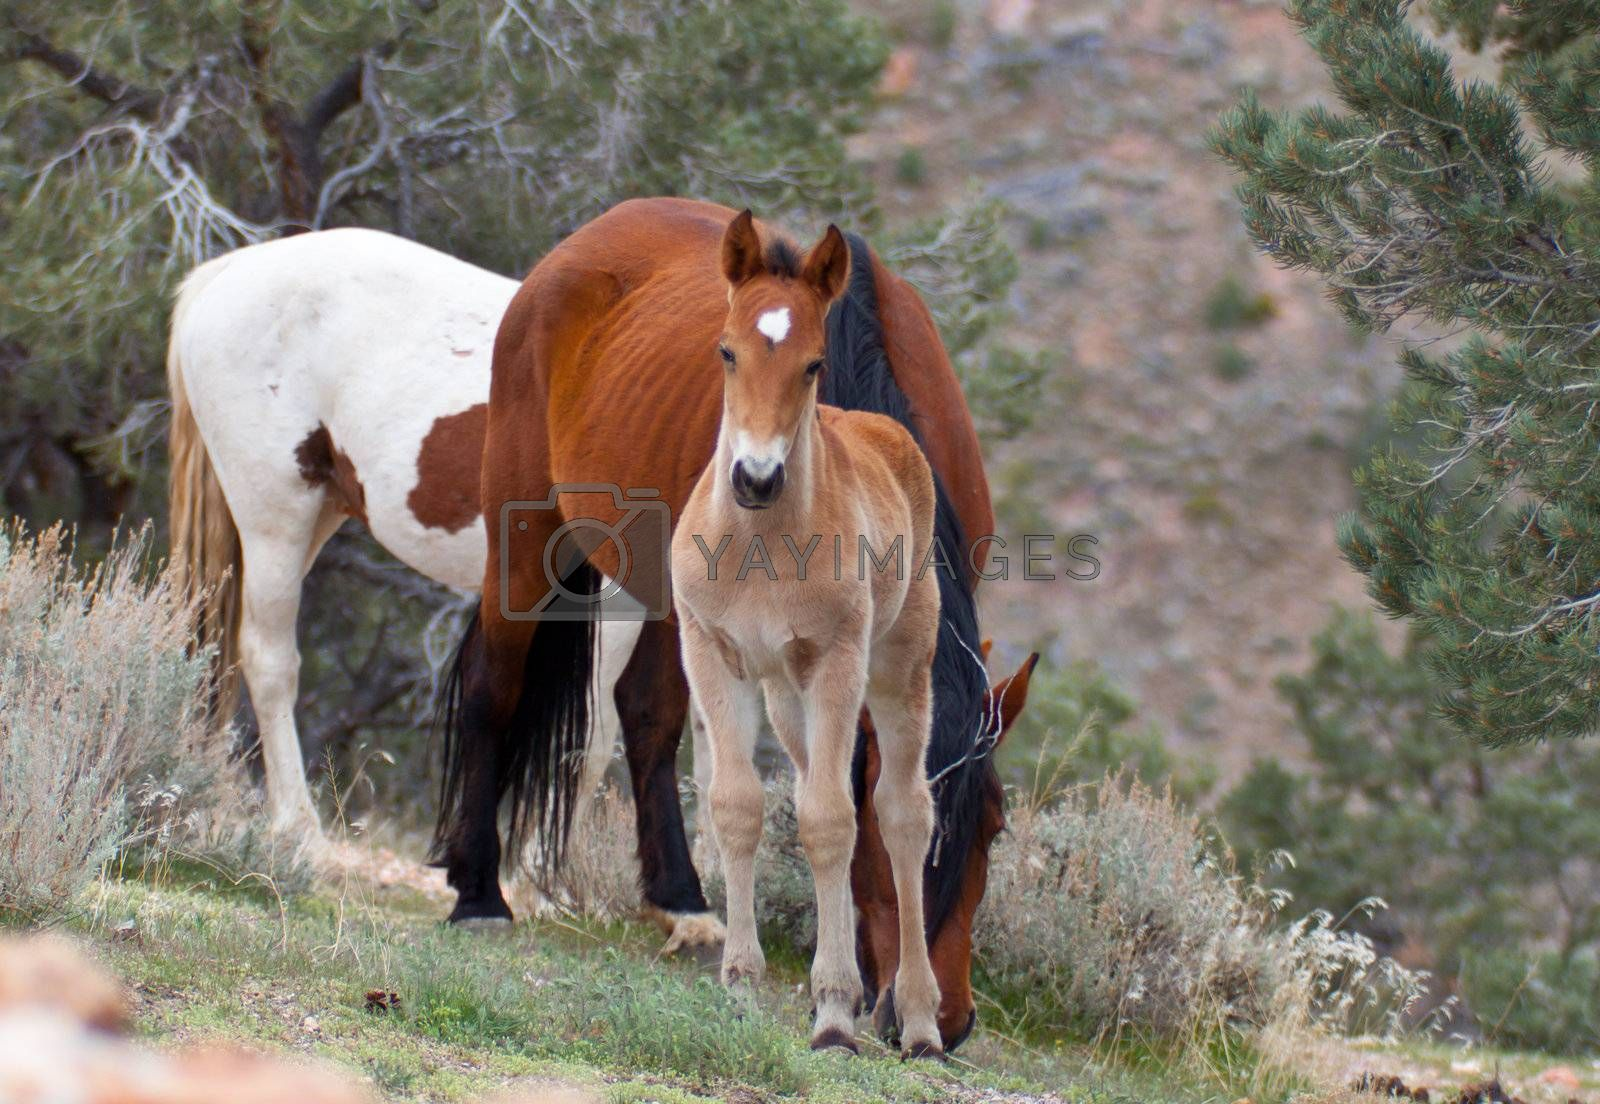 An infant wild horse.  The horse is standing close to his mom.